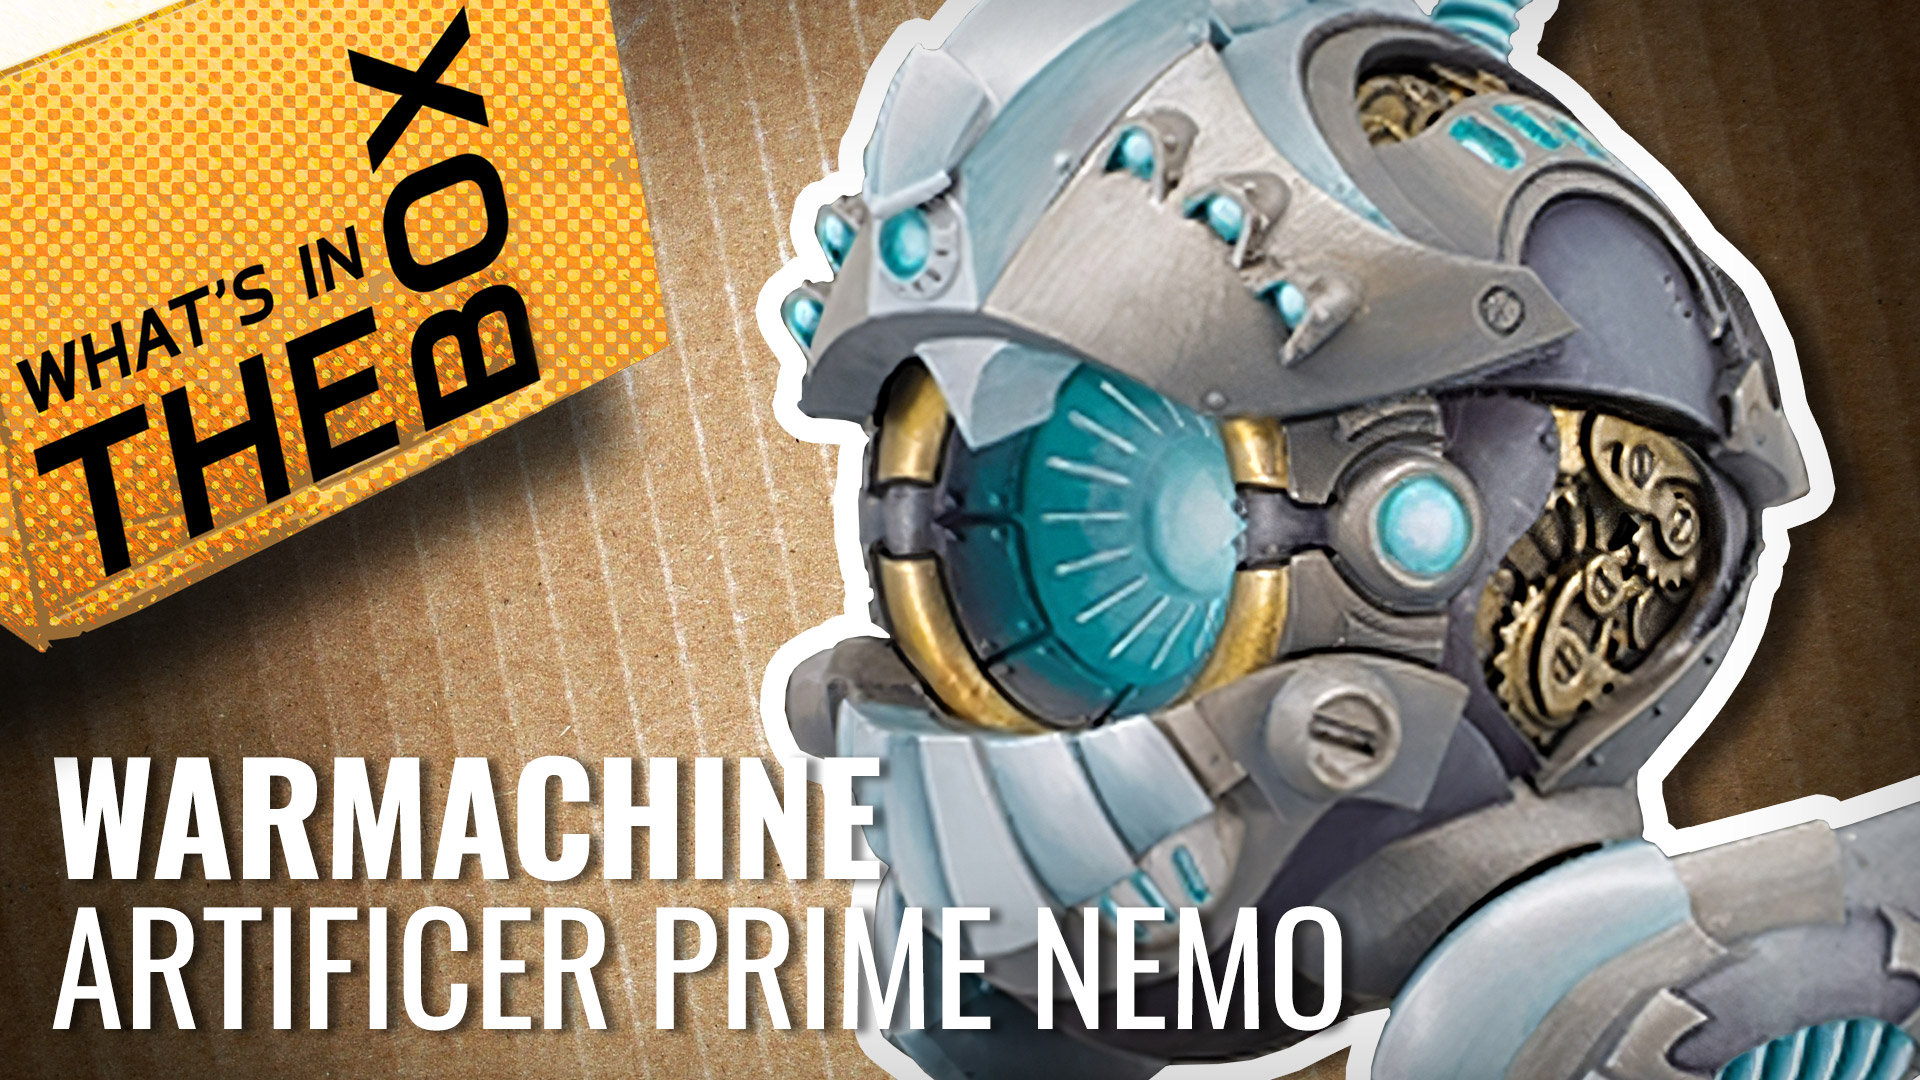 Unboxing-PP-Nemo-coverimage